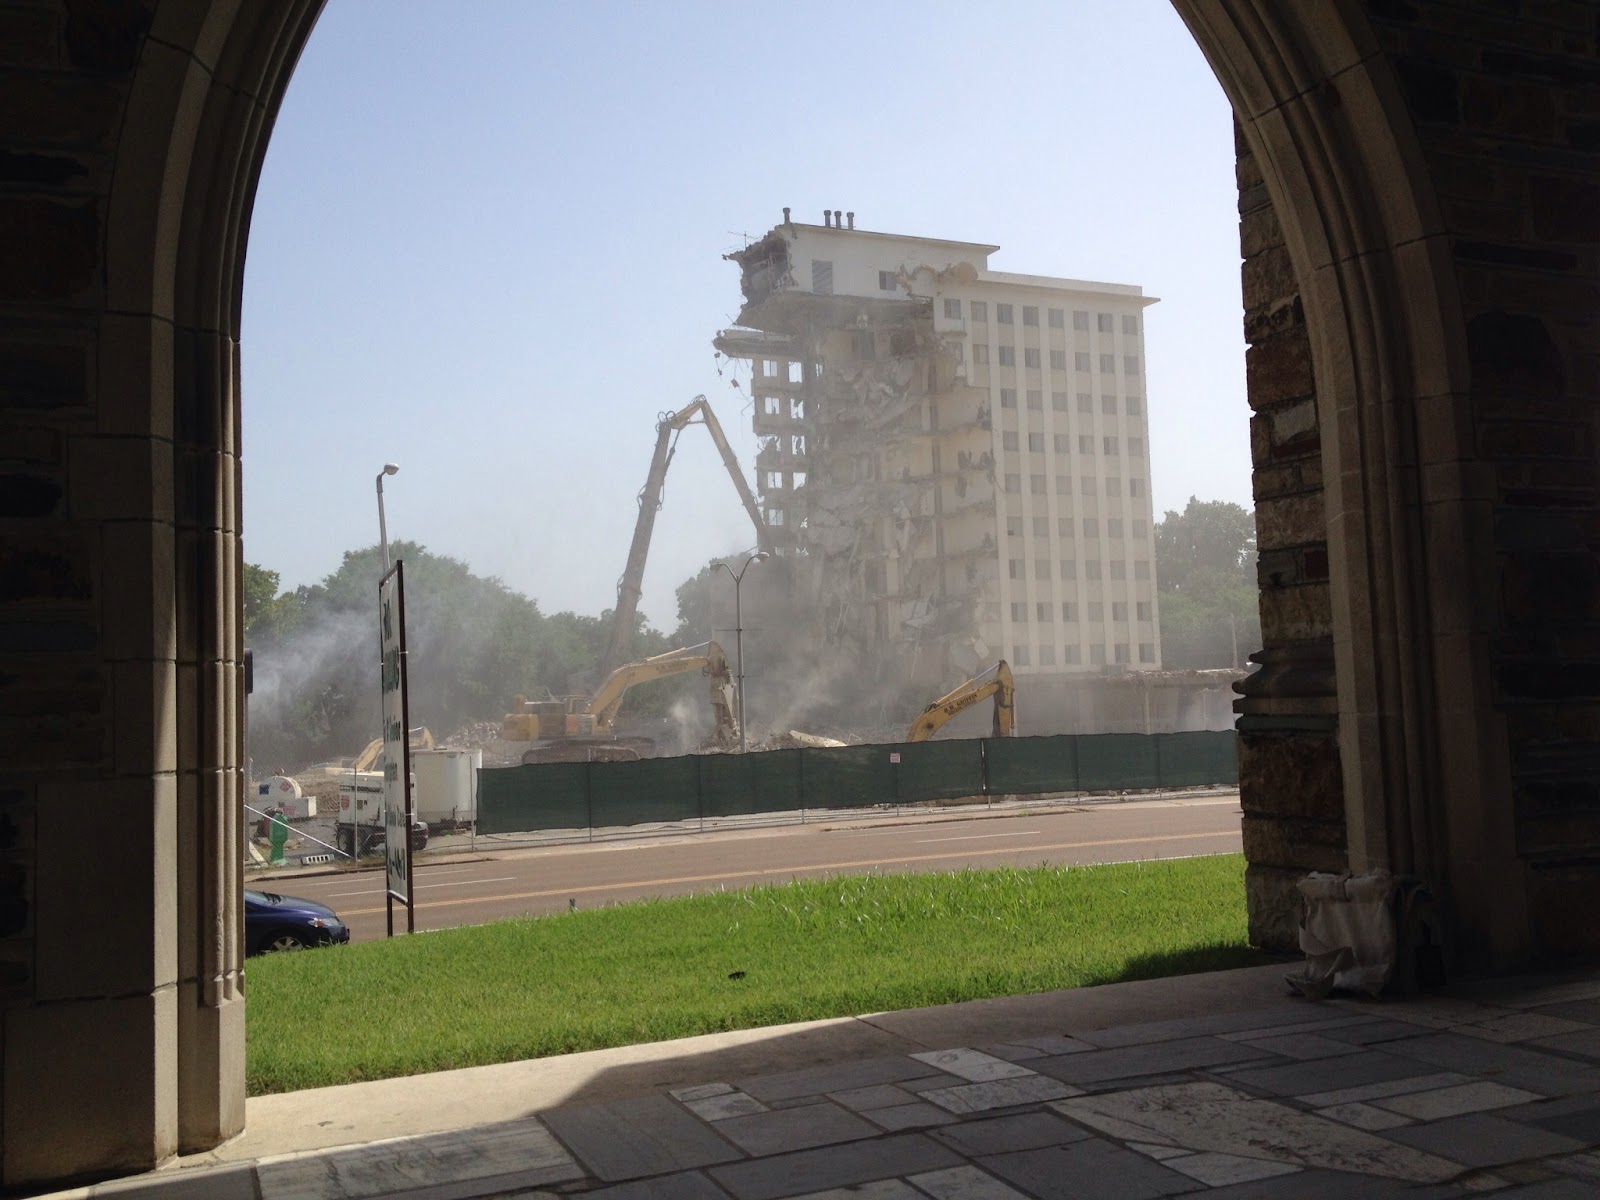 A Memphis building being destroyed viewed through an archway of a church.